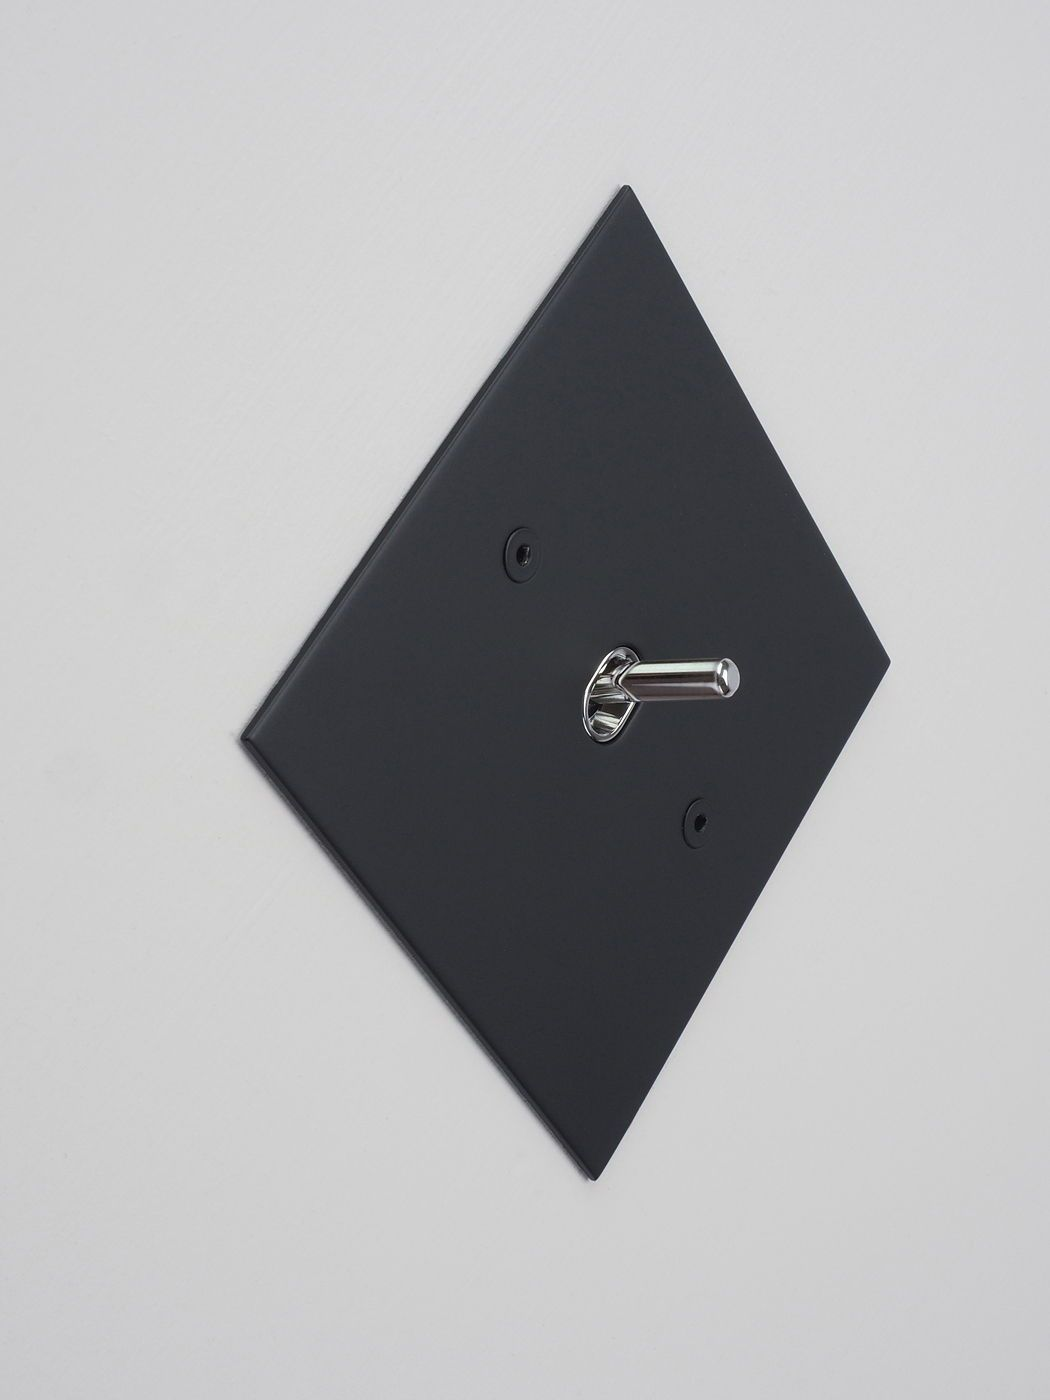 Designer Electrical Wiring Accessories From Focus Sb Designer Light Switches Electrical Wiring Design